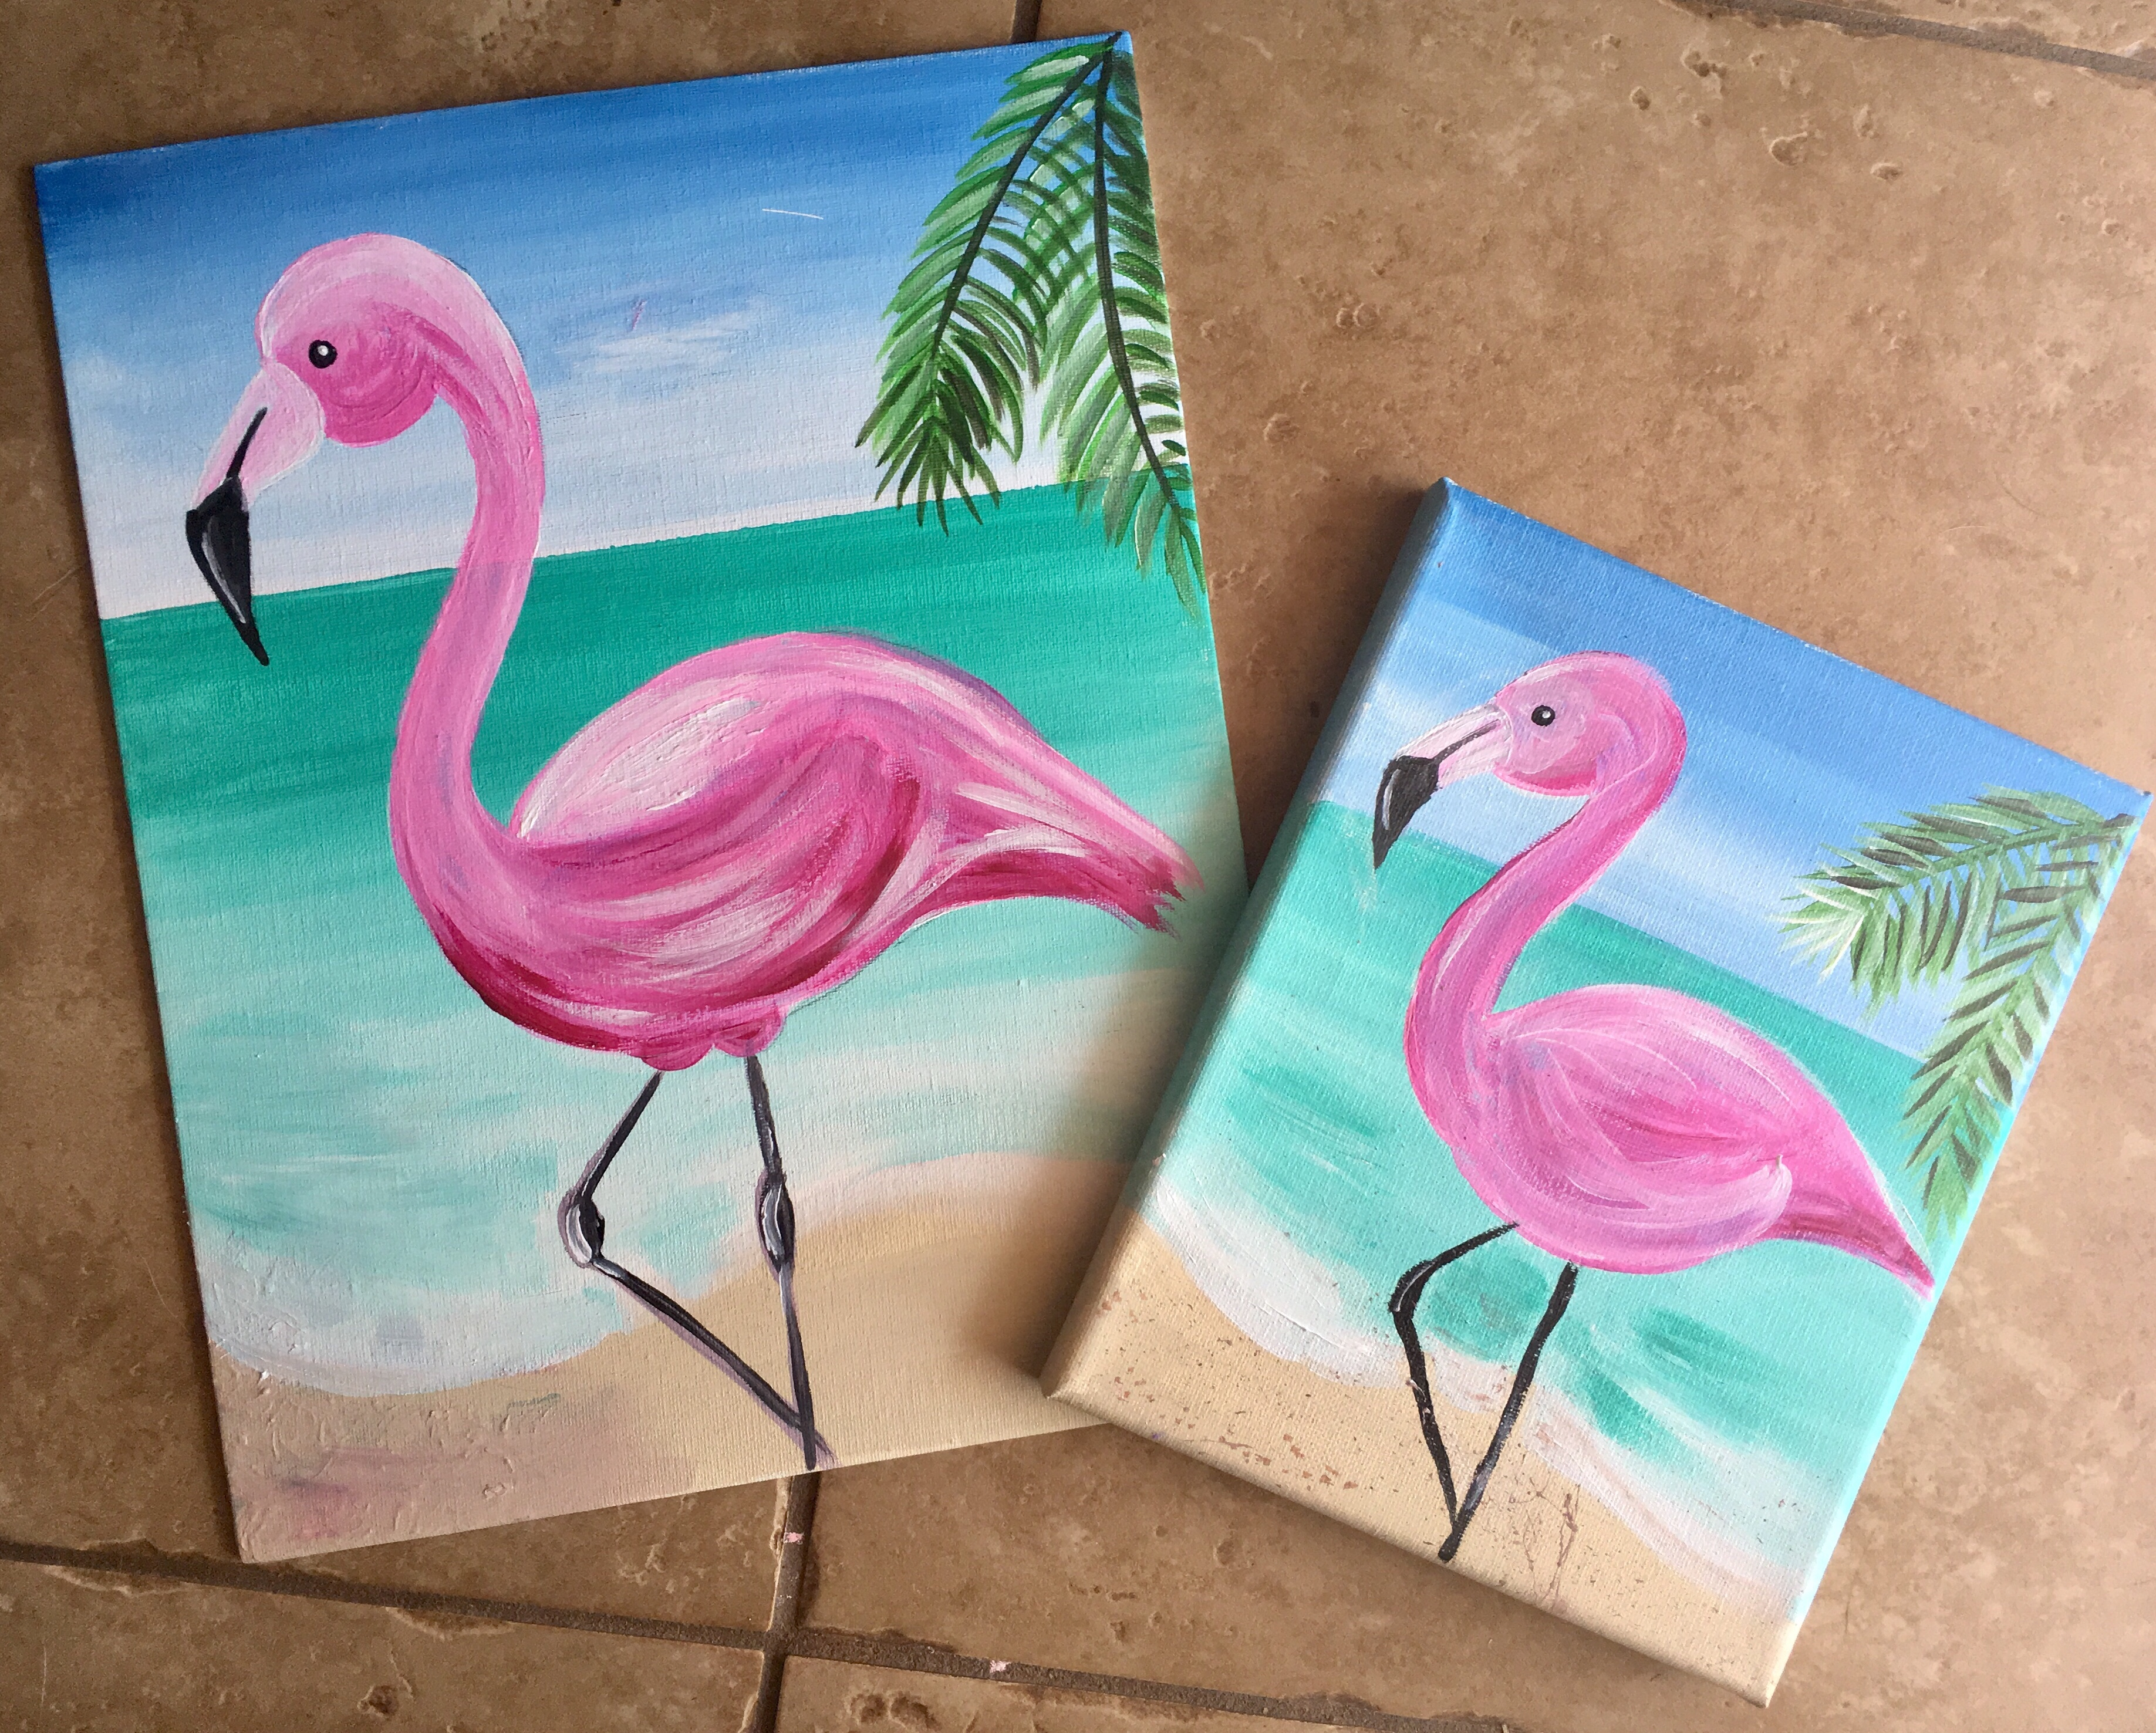 How To Paint A Flamingo - Step By Step Painting - photo#15